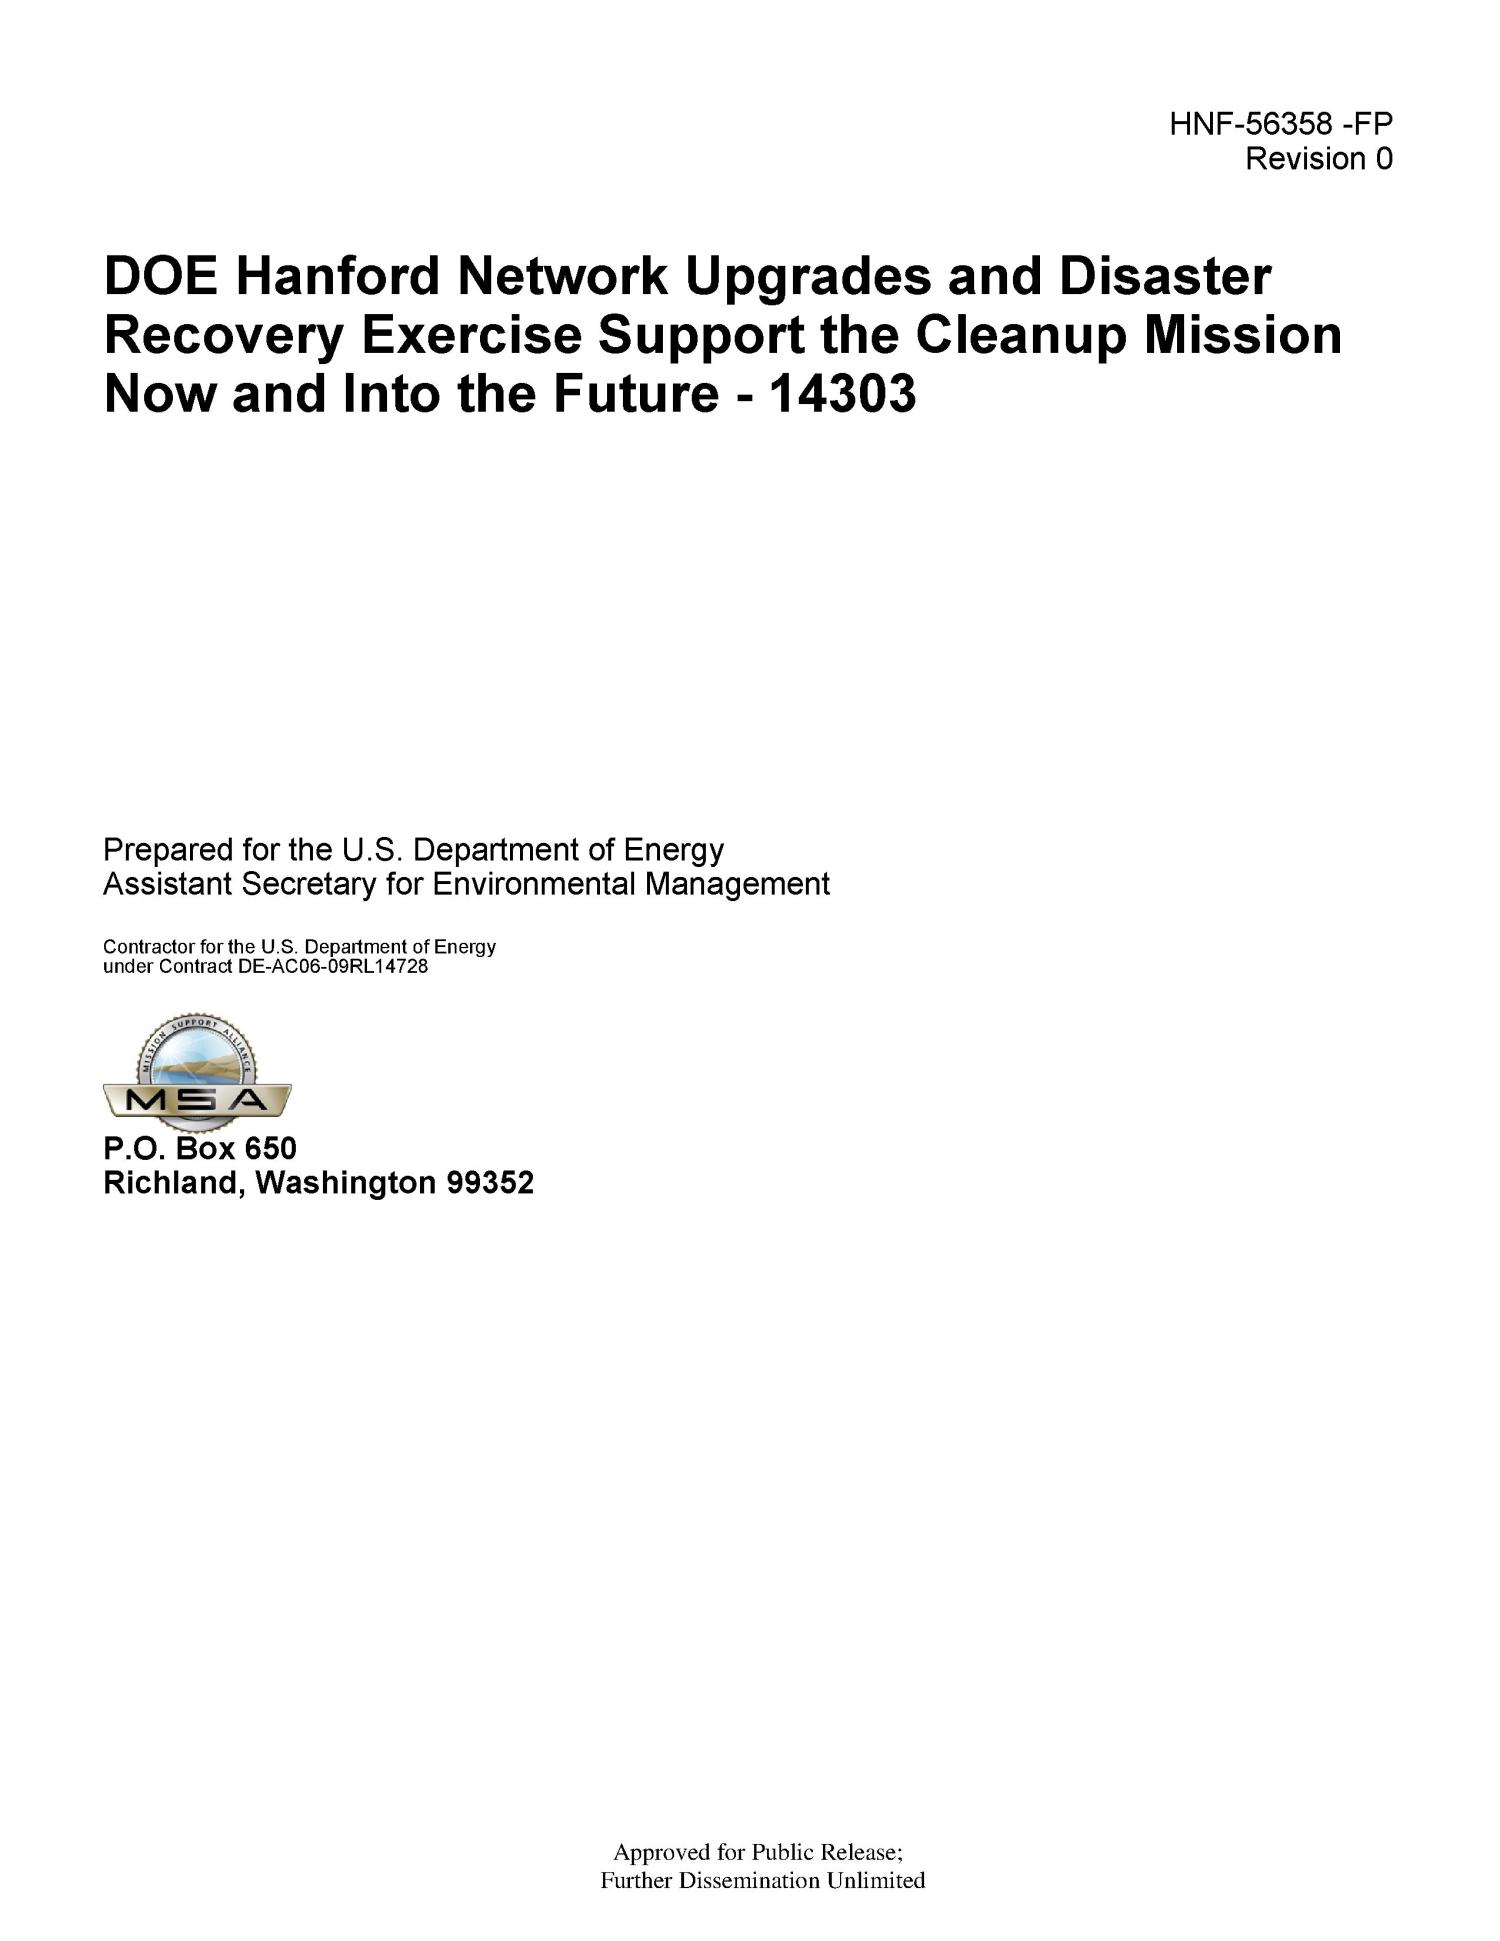 DOE Hanford Network Upgrades and Disaster Recovery Exercise Support the Cleanup Mission Now and into the Future - 14303                                                                                                      [Sequence #]: 1 of 15